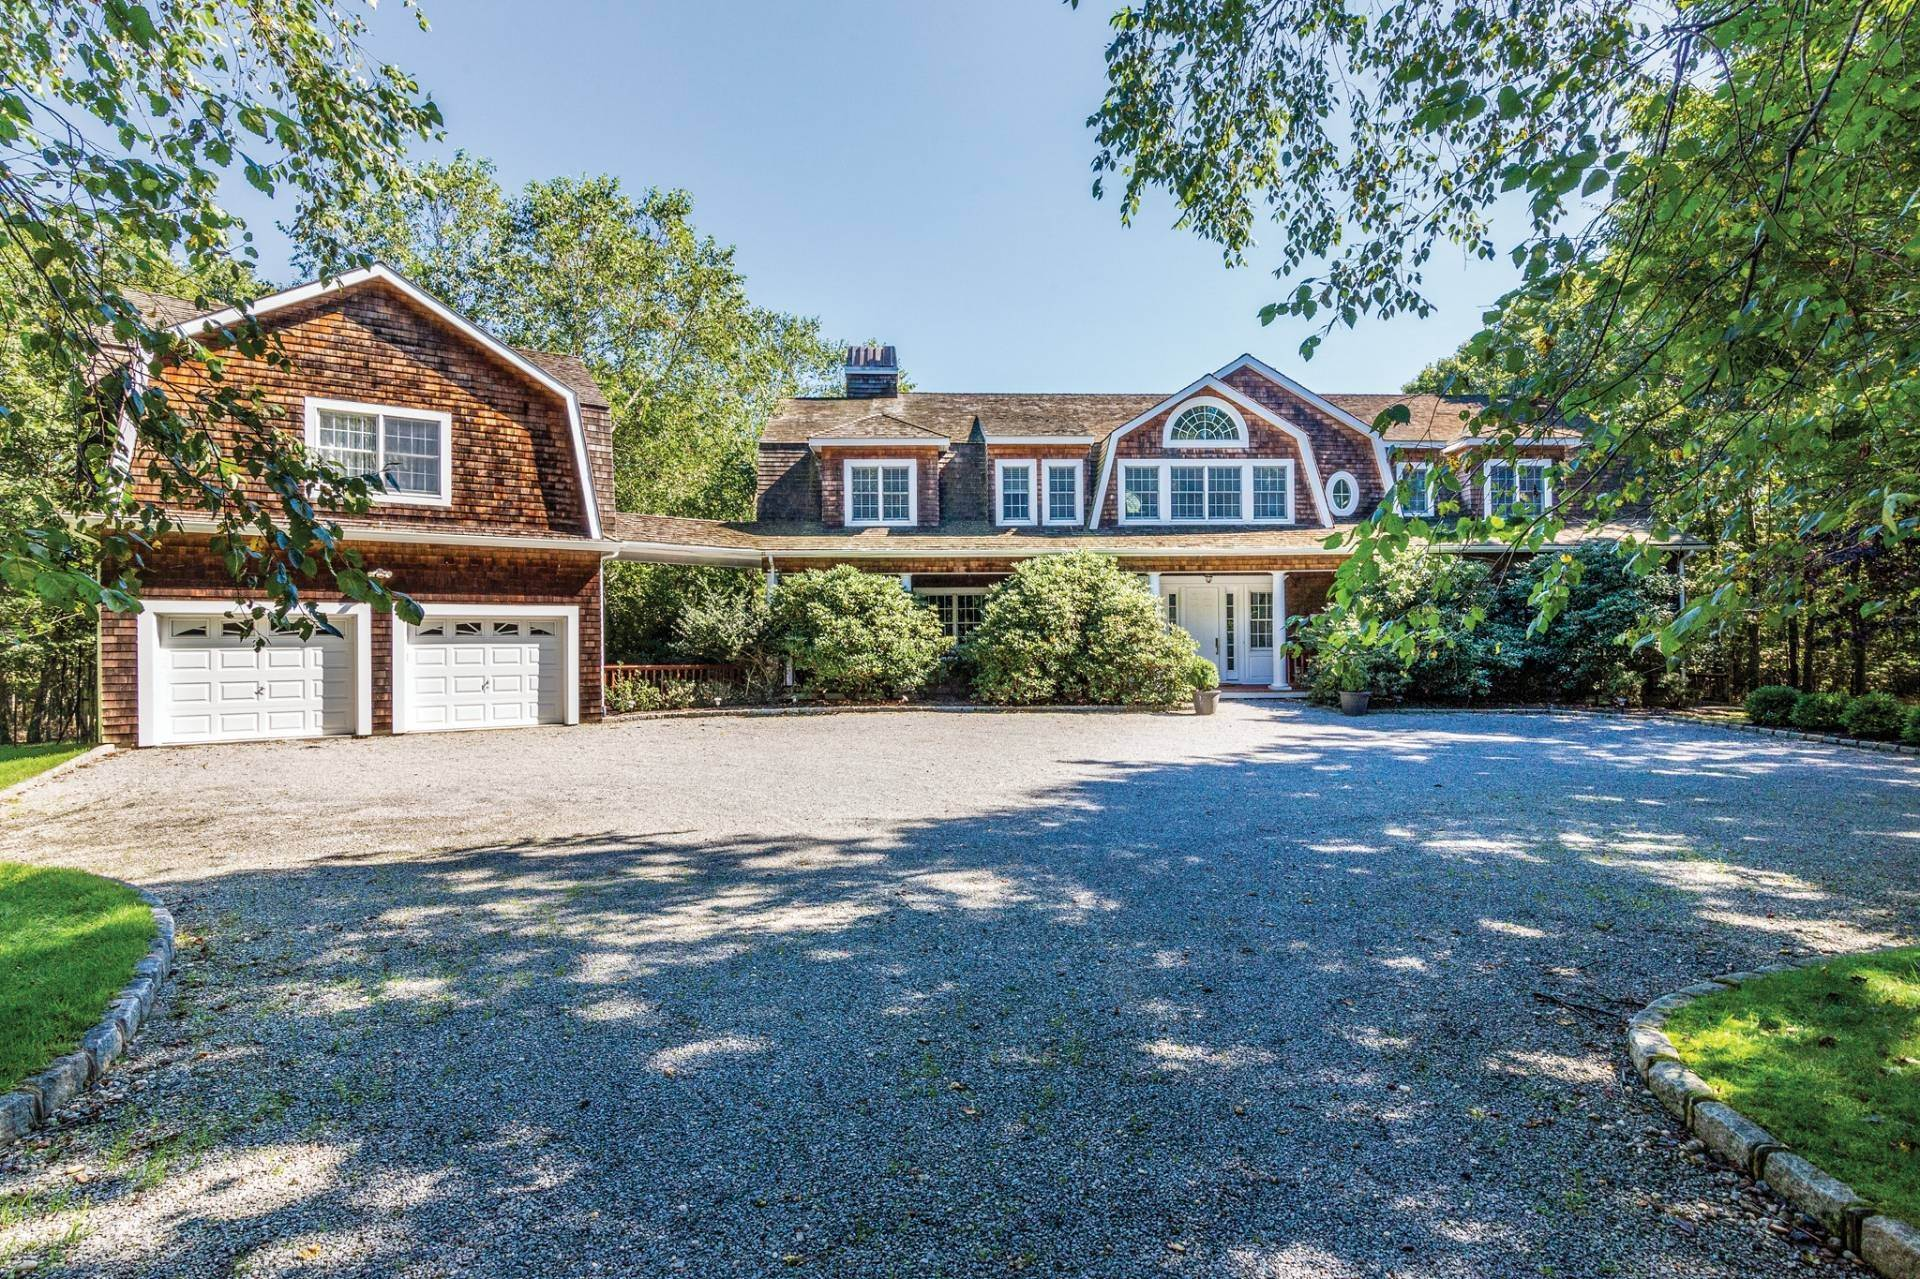 Single Family Home at Luxury Rental In Water Mill Southampton, NY 11968